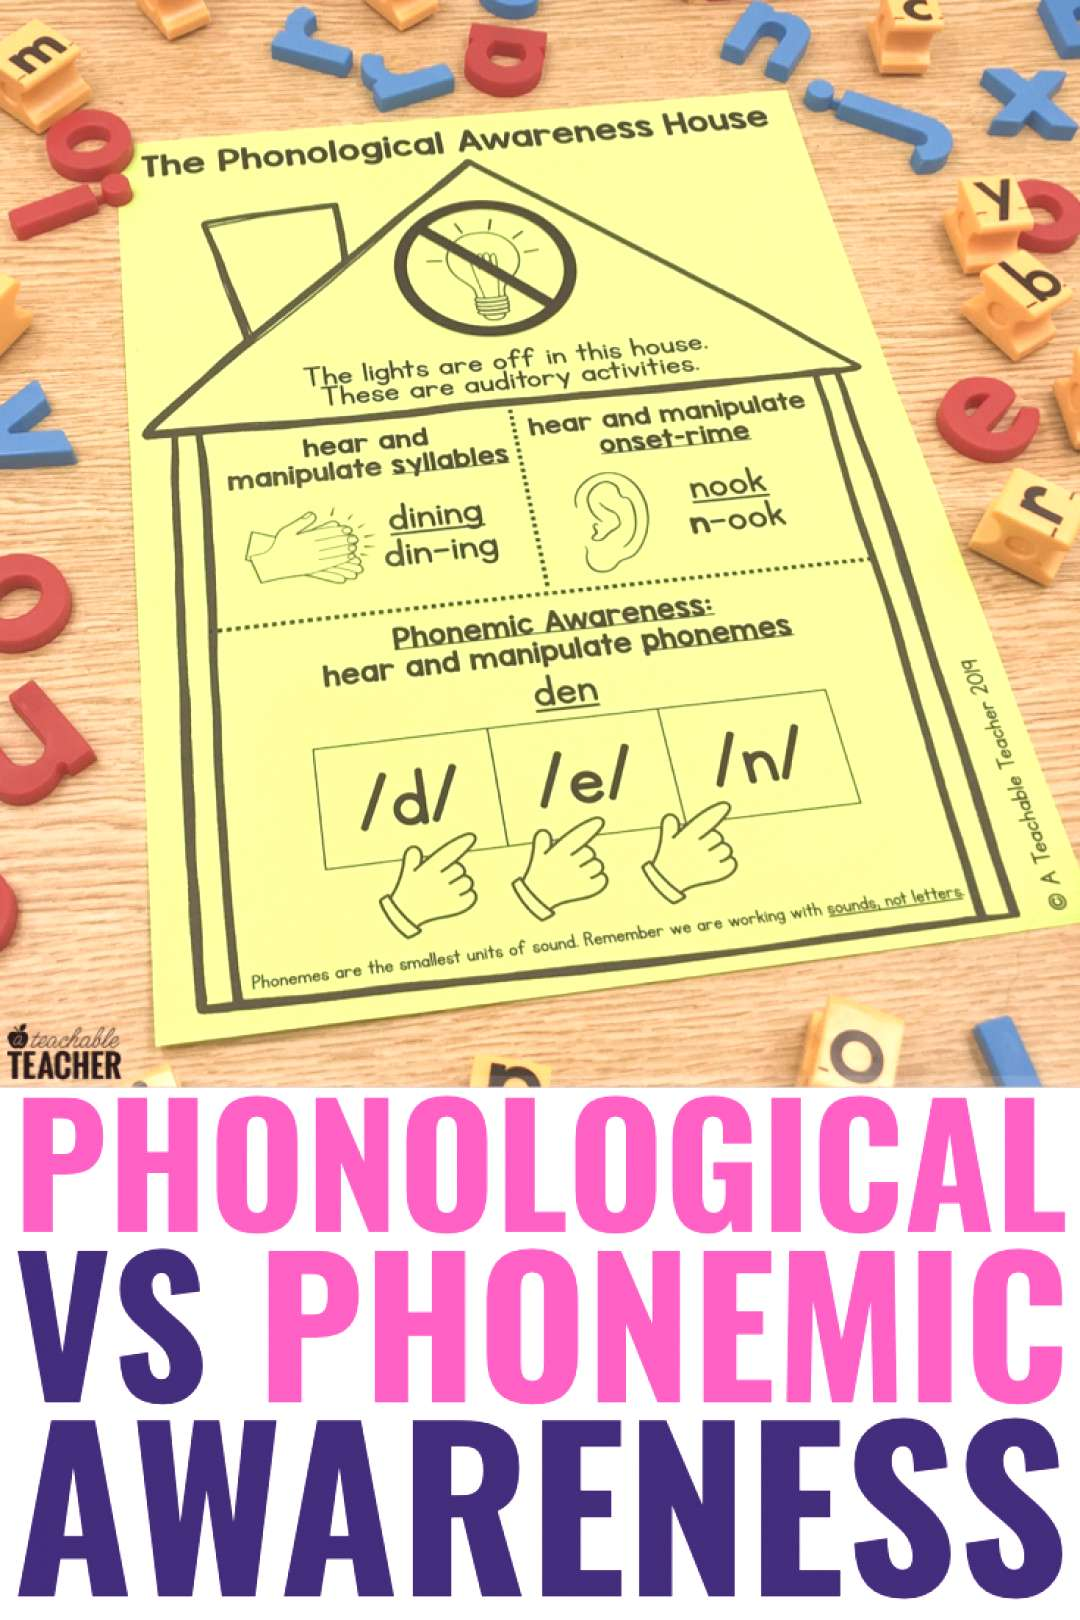 Phonological awareness and phonemic awareness instruction are important for children learning to re